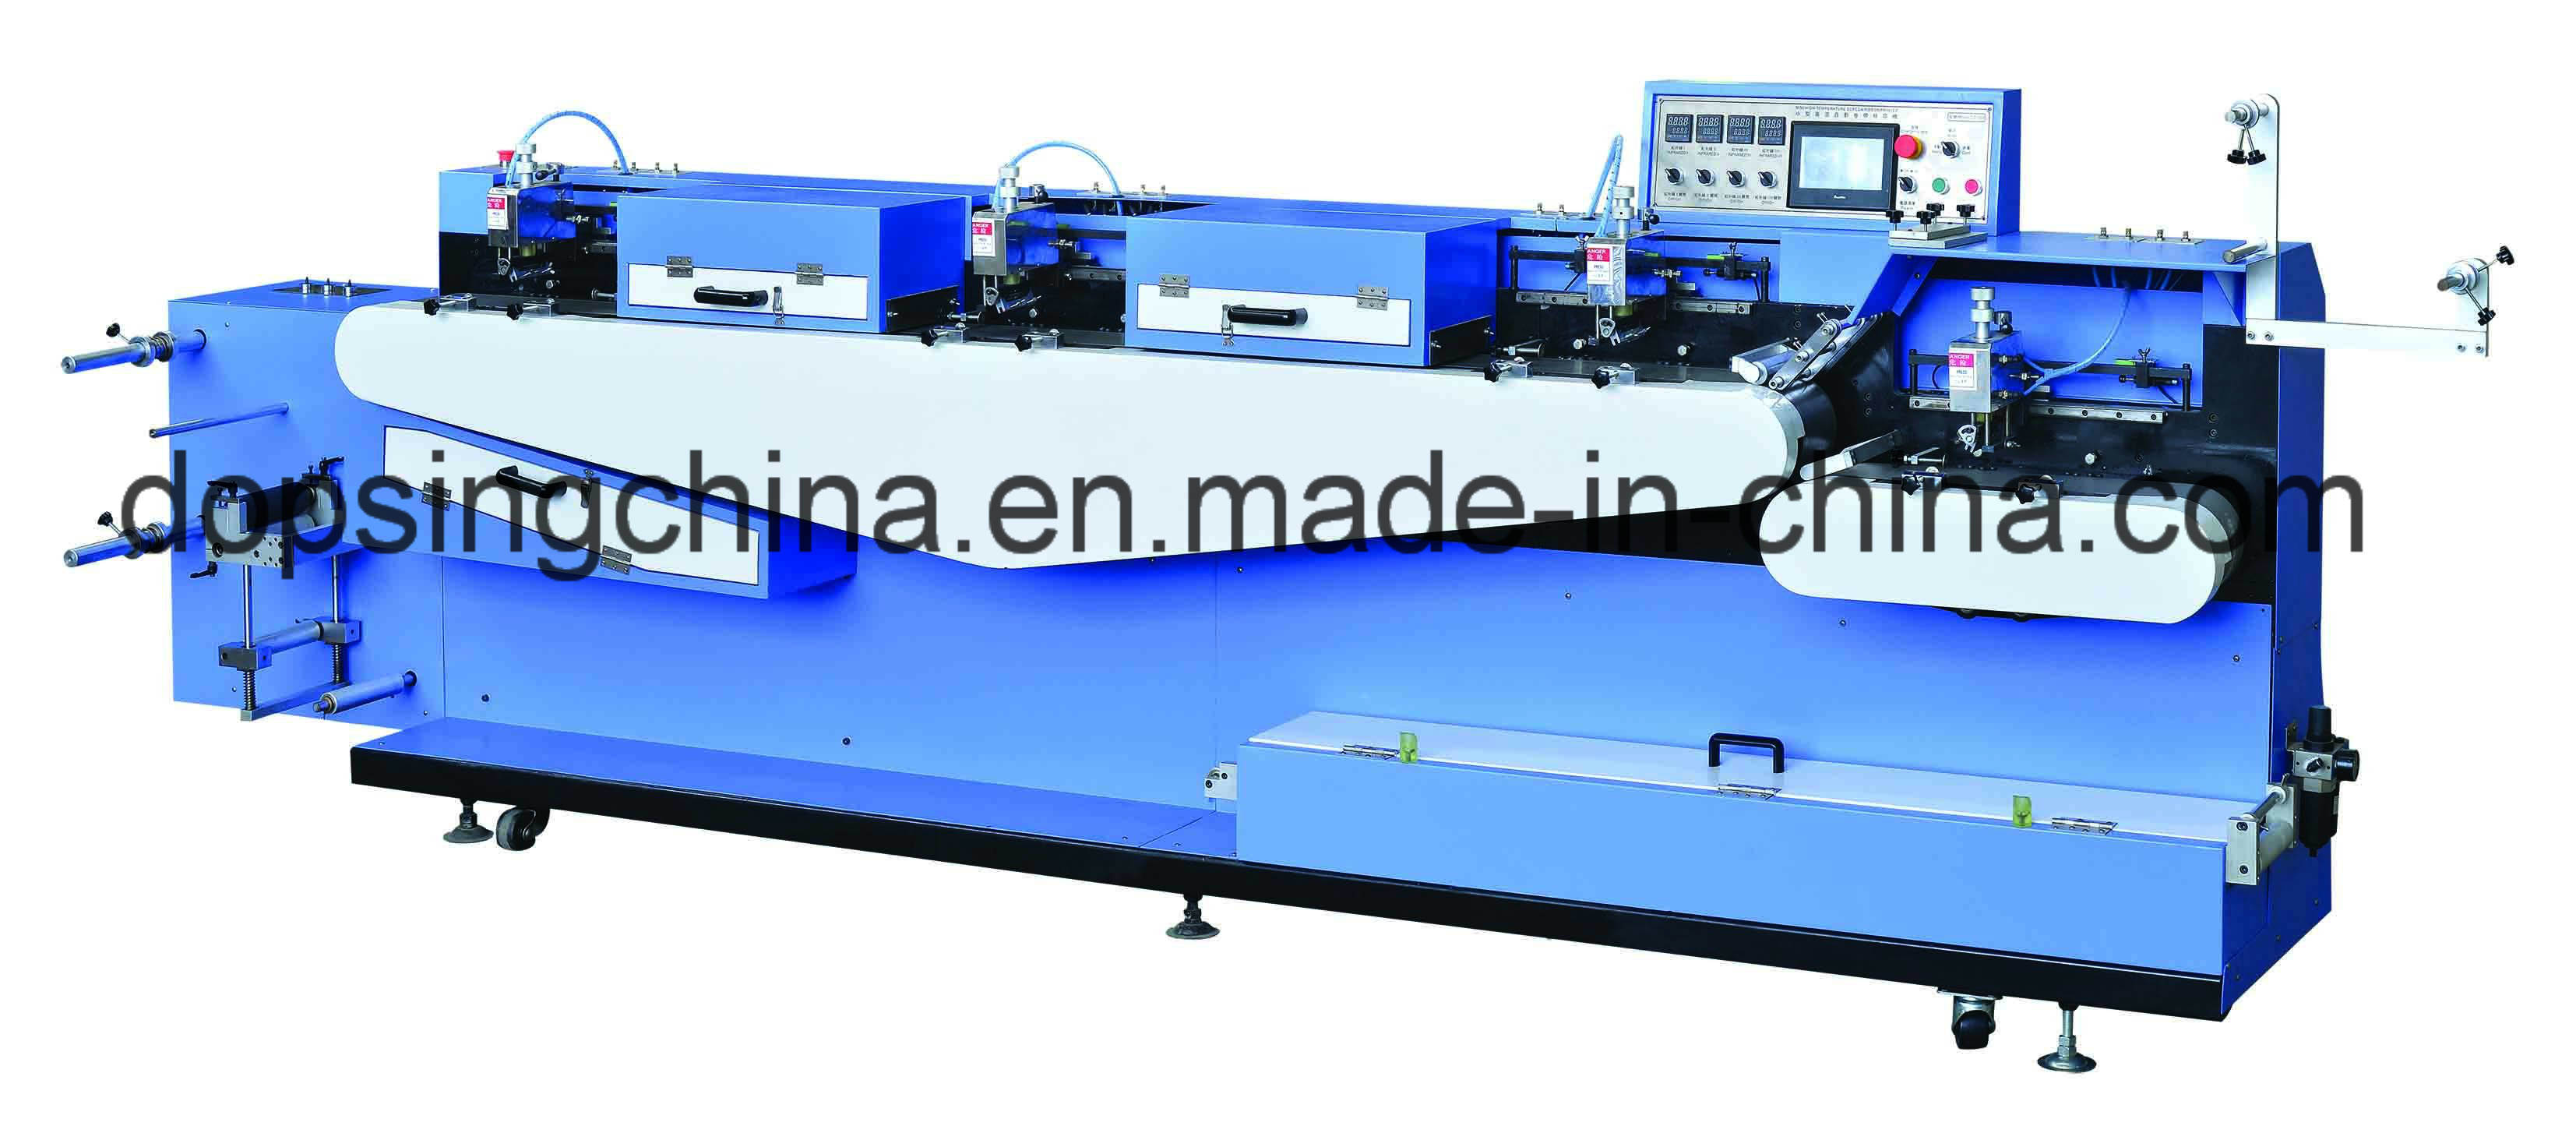 2017 Latest Design White Mesh Screen Printing -